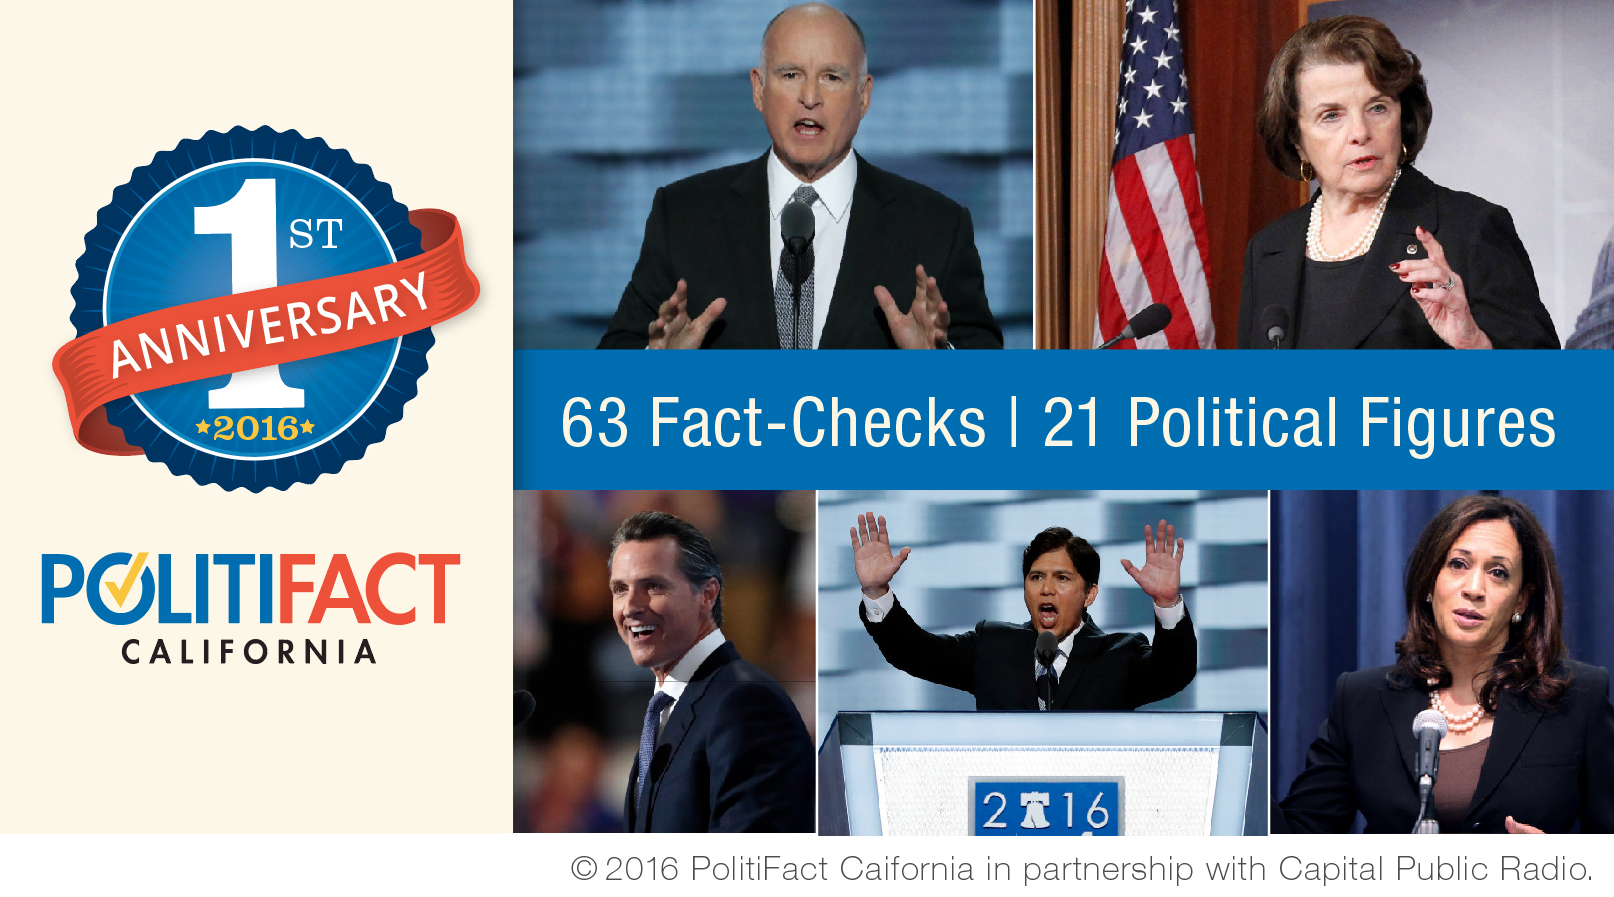 Politifact Ca Finishes First Year Of Fact Checking Swing Dance Steps Diagram Rick Mohr Rapper Figures